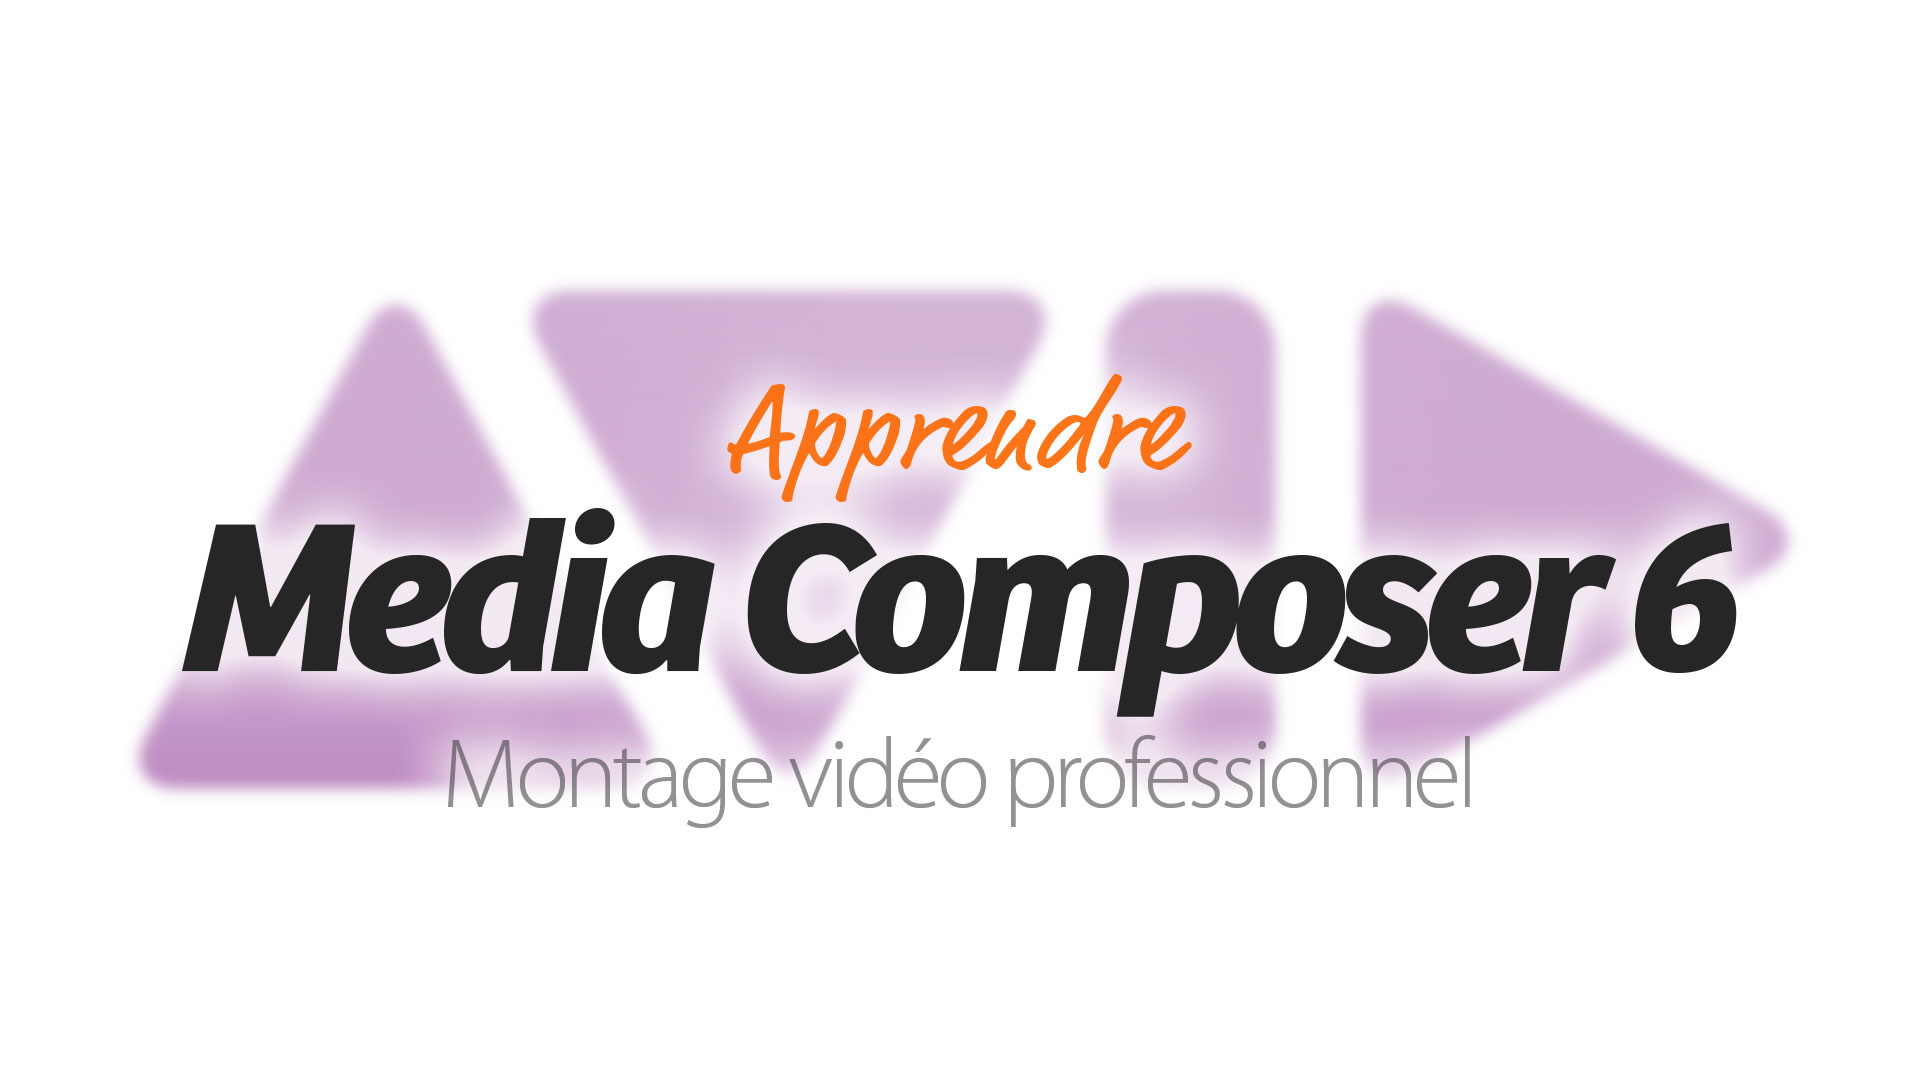 Apprendre Avid Media Composer 6